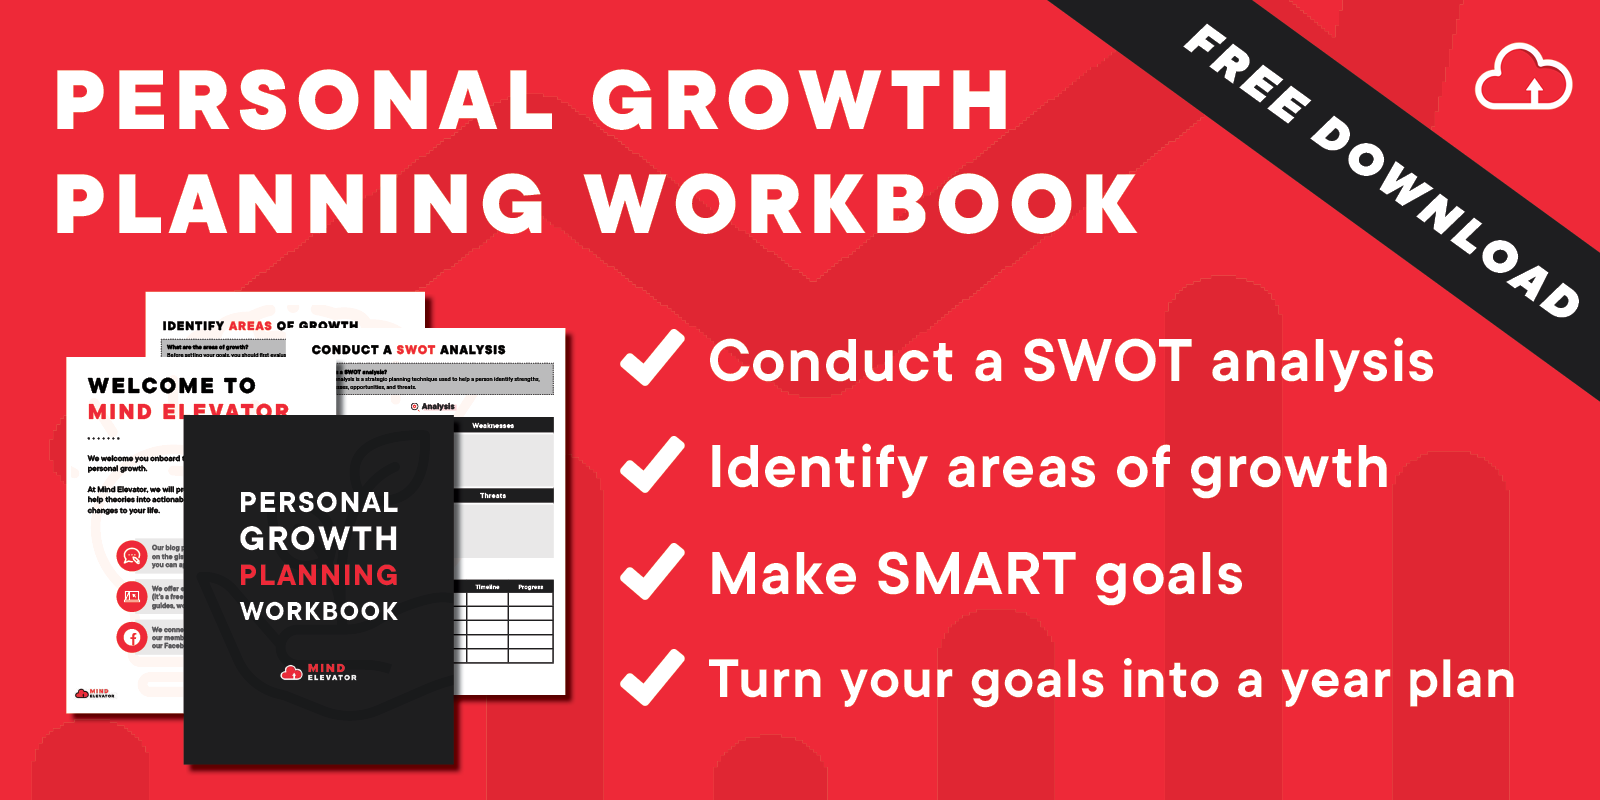 The Personal Growth Planning Workbook helps you conduct a SWOT analysis, identify areas of growth, make SMART goals and turn your goals into a year plan.